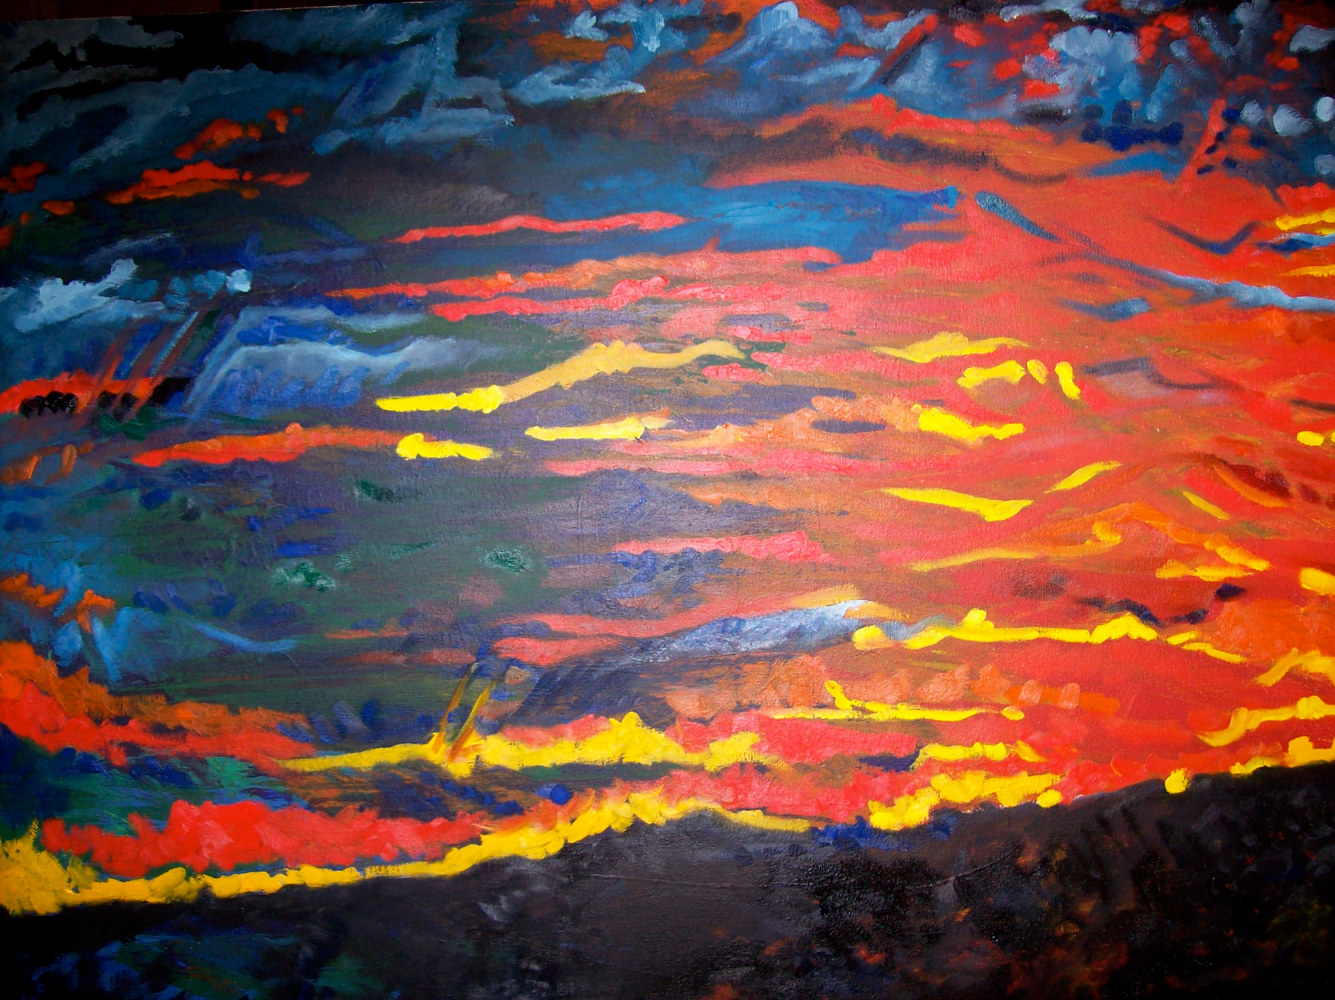 Oil painting Colorado Dreams by Corliss R Wall